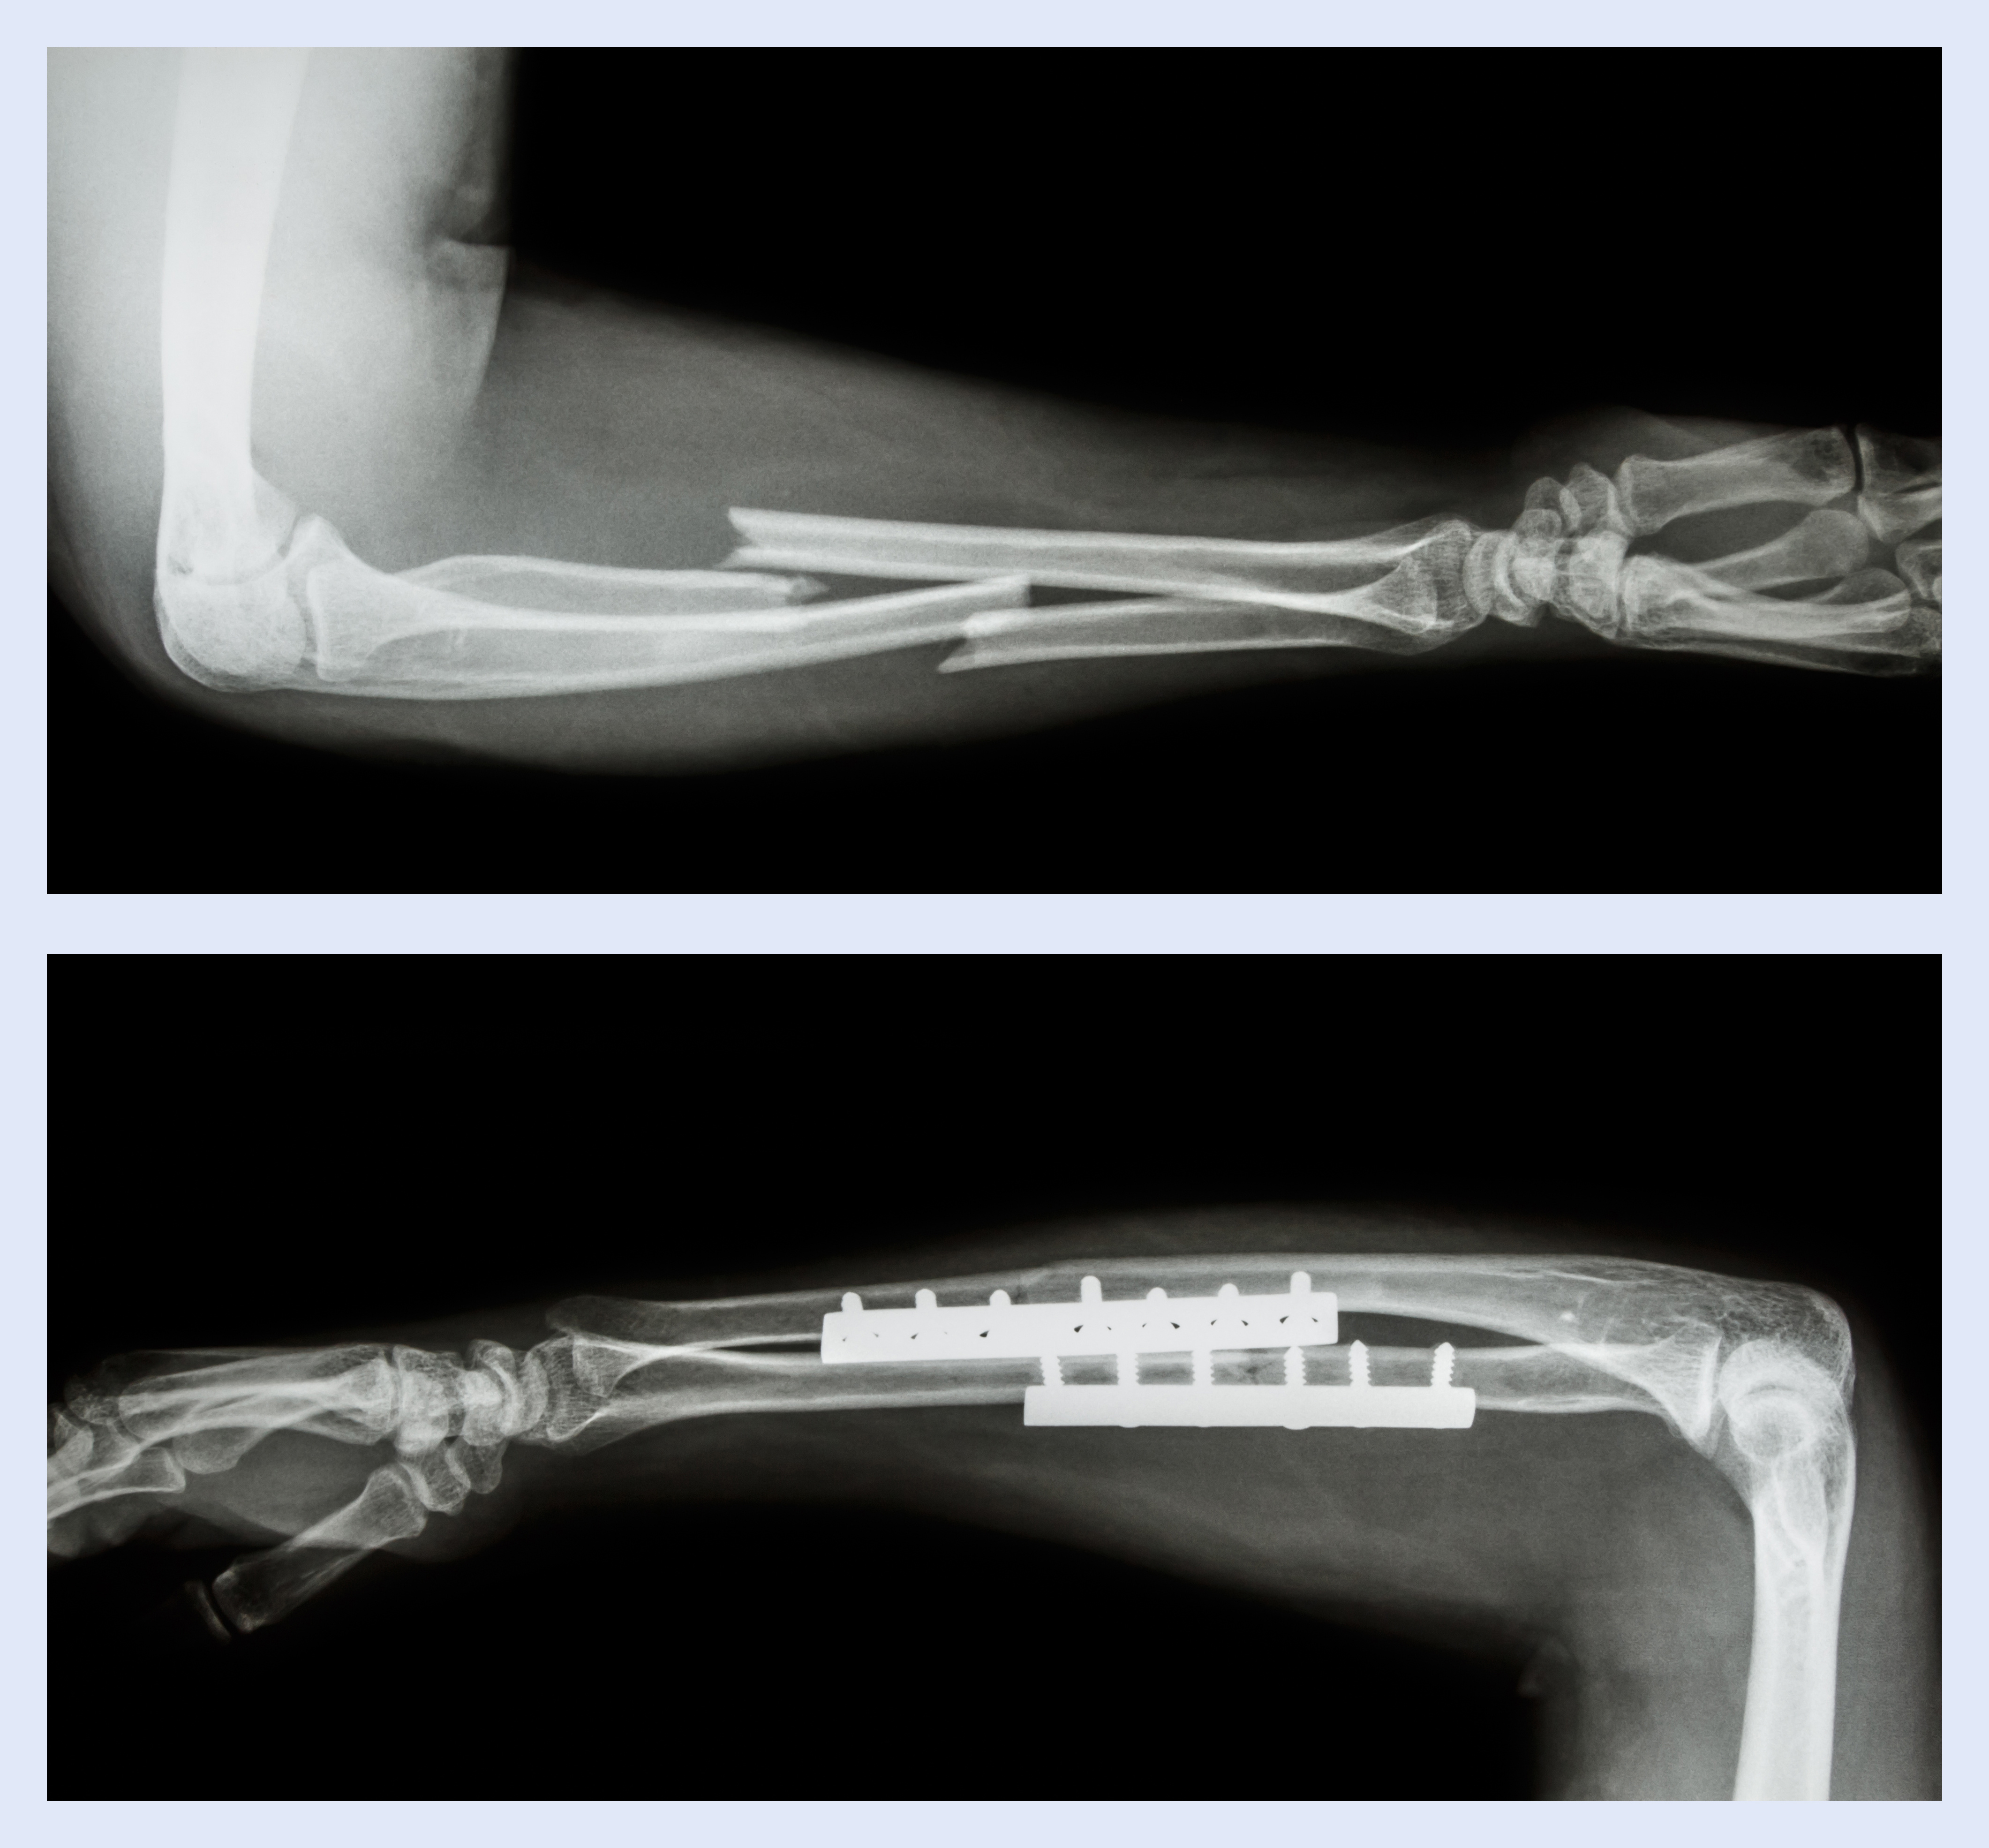 Fracture ulnar and radius (Forearm bone) and surgery